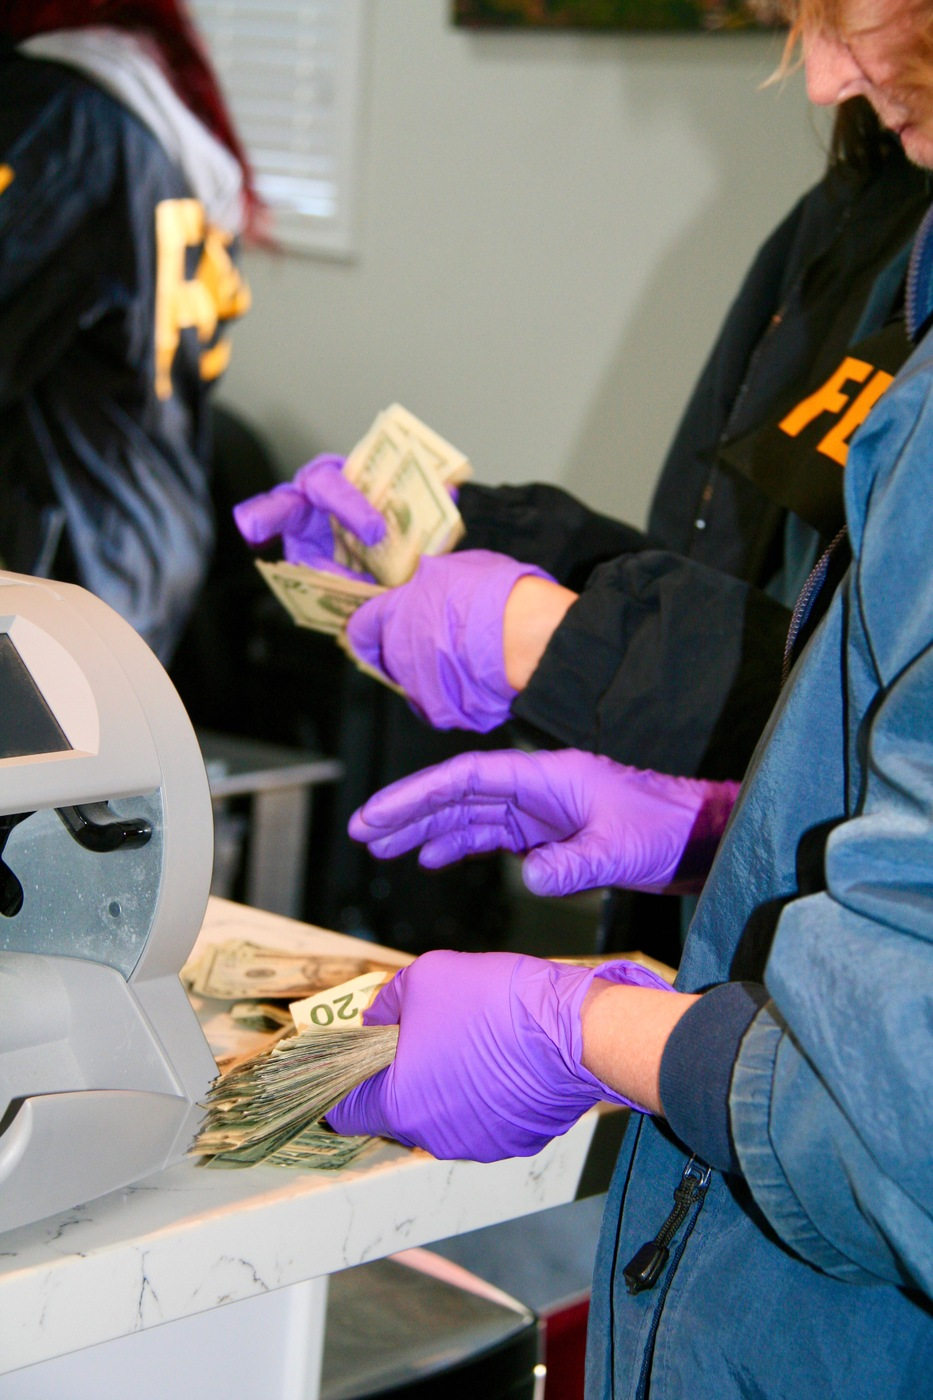 Agents count U.S. currency during execution of search warrant in L.A. in March 2020 and seized approximately $22,000 in cash.